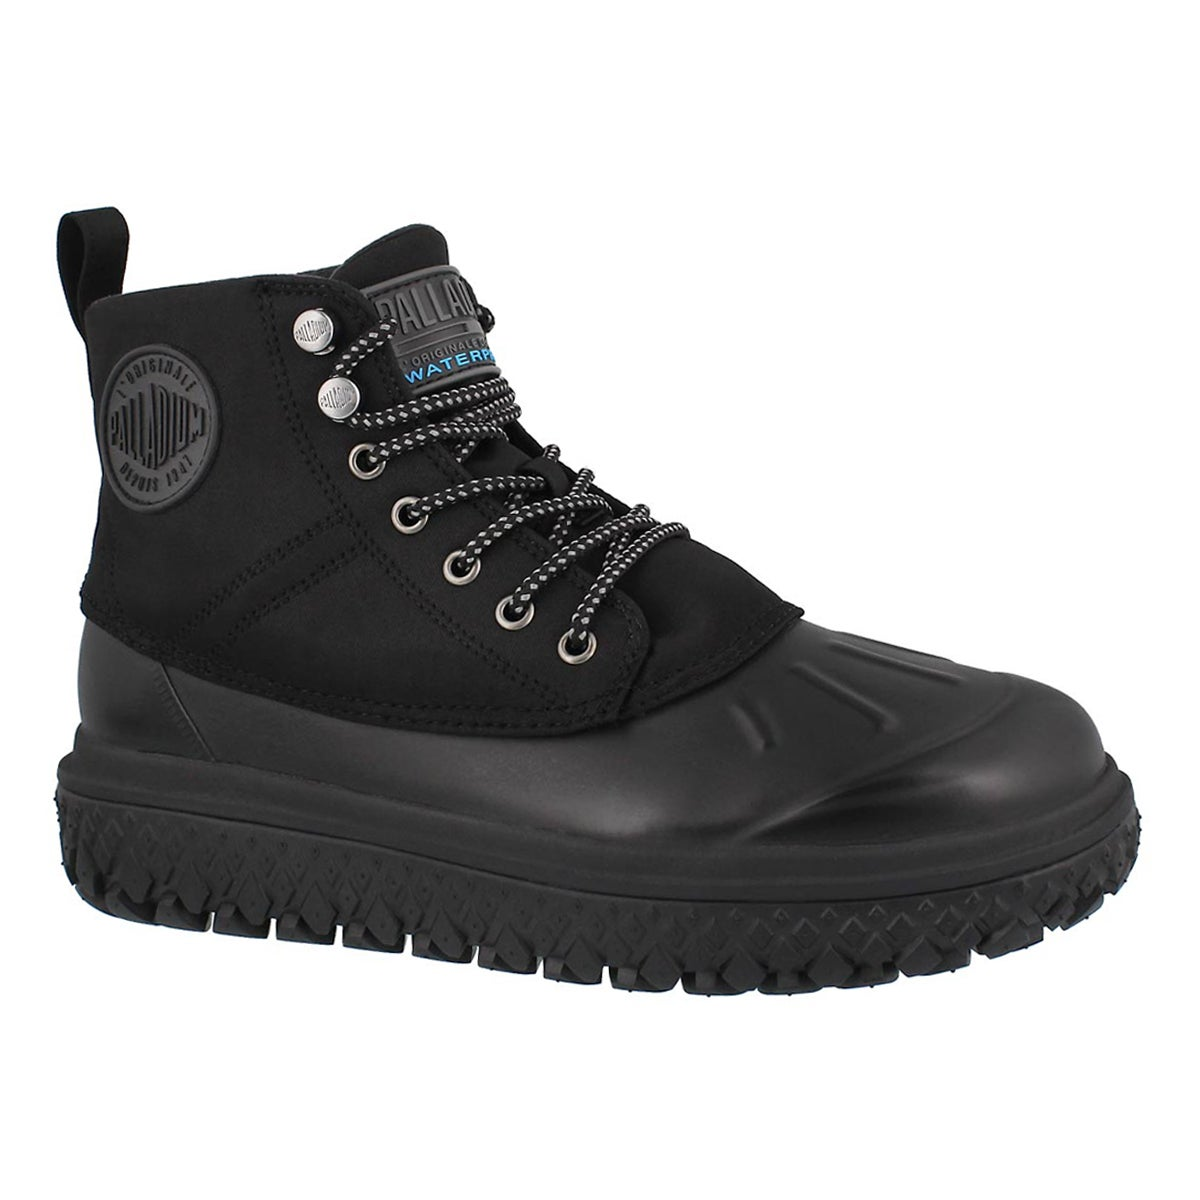 Men's CRUSHION SCRMBL blk waterproof ankle boots